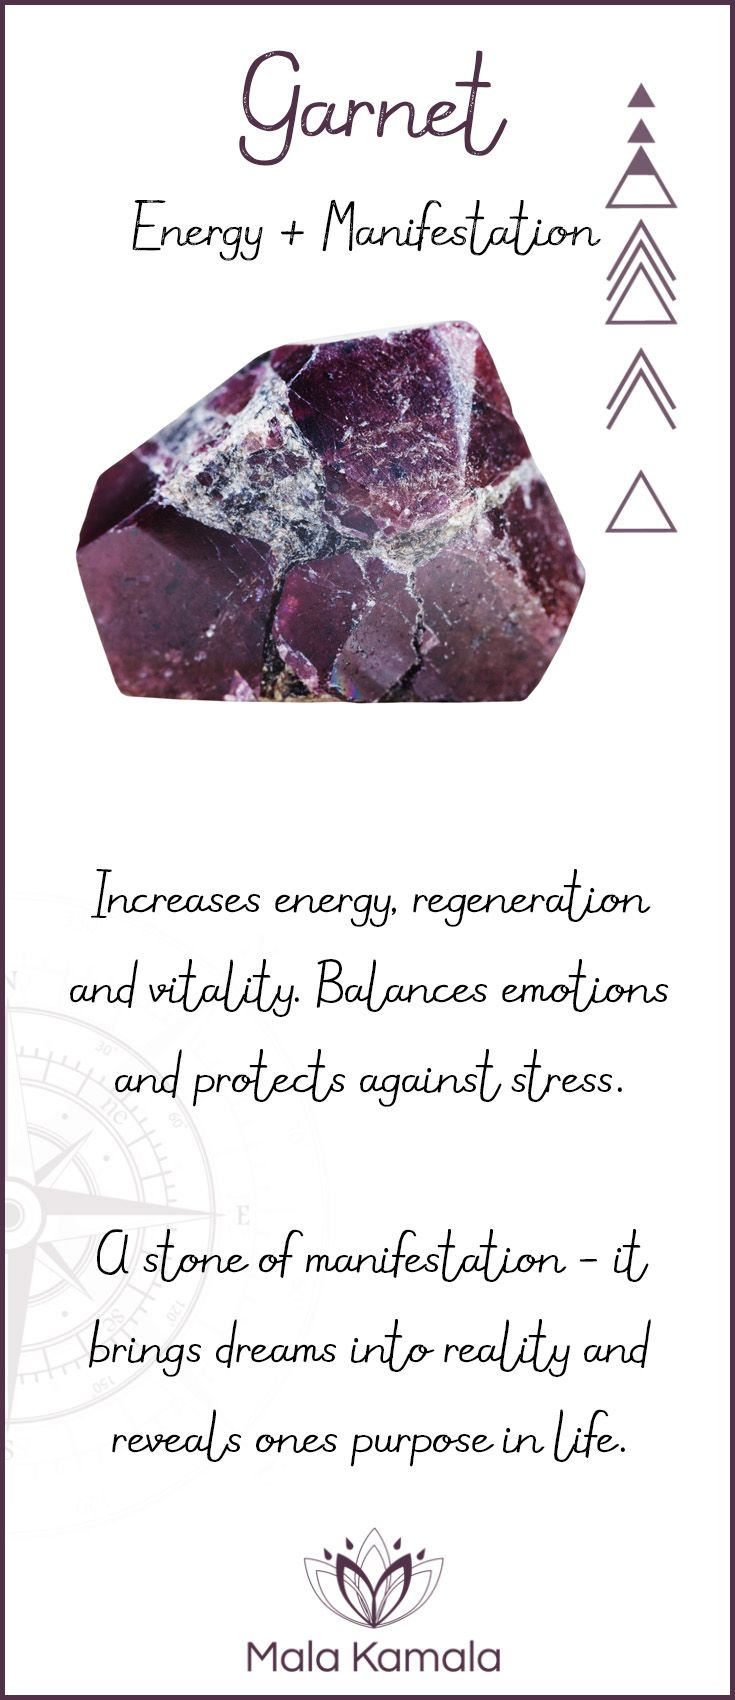 Pin To Save, Tap To Shop The Gem. What is the meaning and crystal and chakra healing properties of garnet? A stone for energy and manifestation. Mala Kamala Mala Beads - Malas, Mala Beads, Mala Bracelets, Tiny Intentions, Baby Necklaces, Yoga Jewelry, Med www.1planet7billionworlds.com